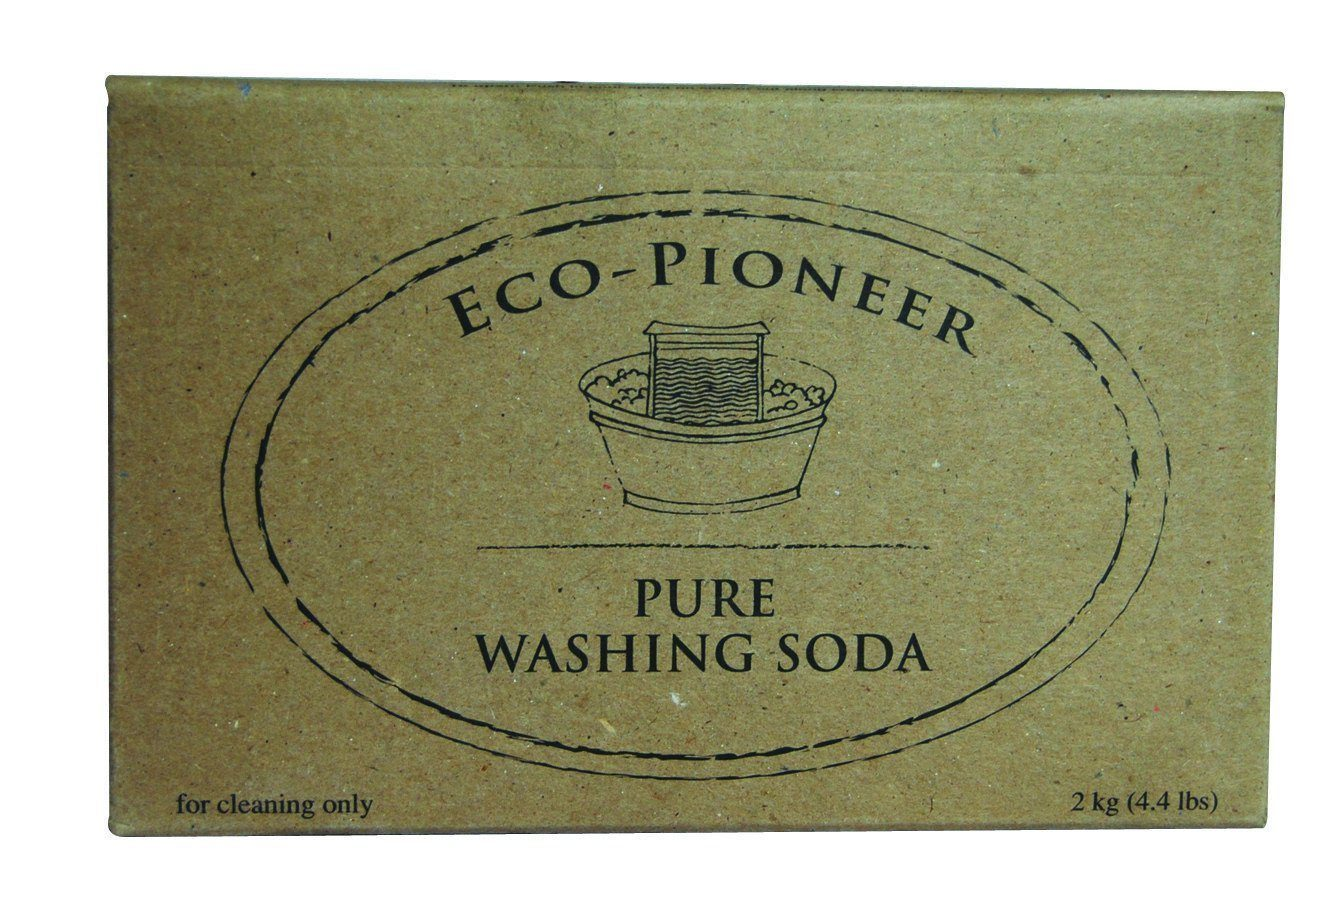 Healthy Lifestyles - Eco-Pioneer - Pure Washing Soda, 2kg